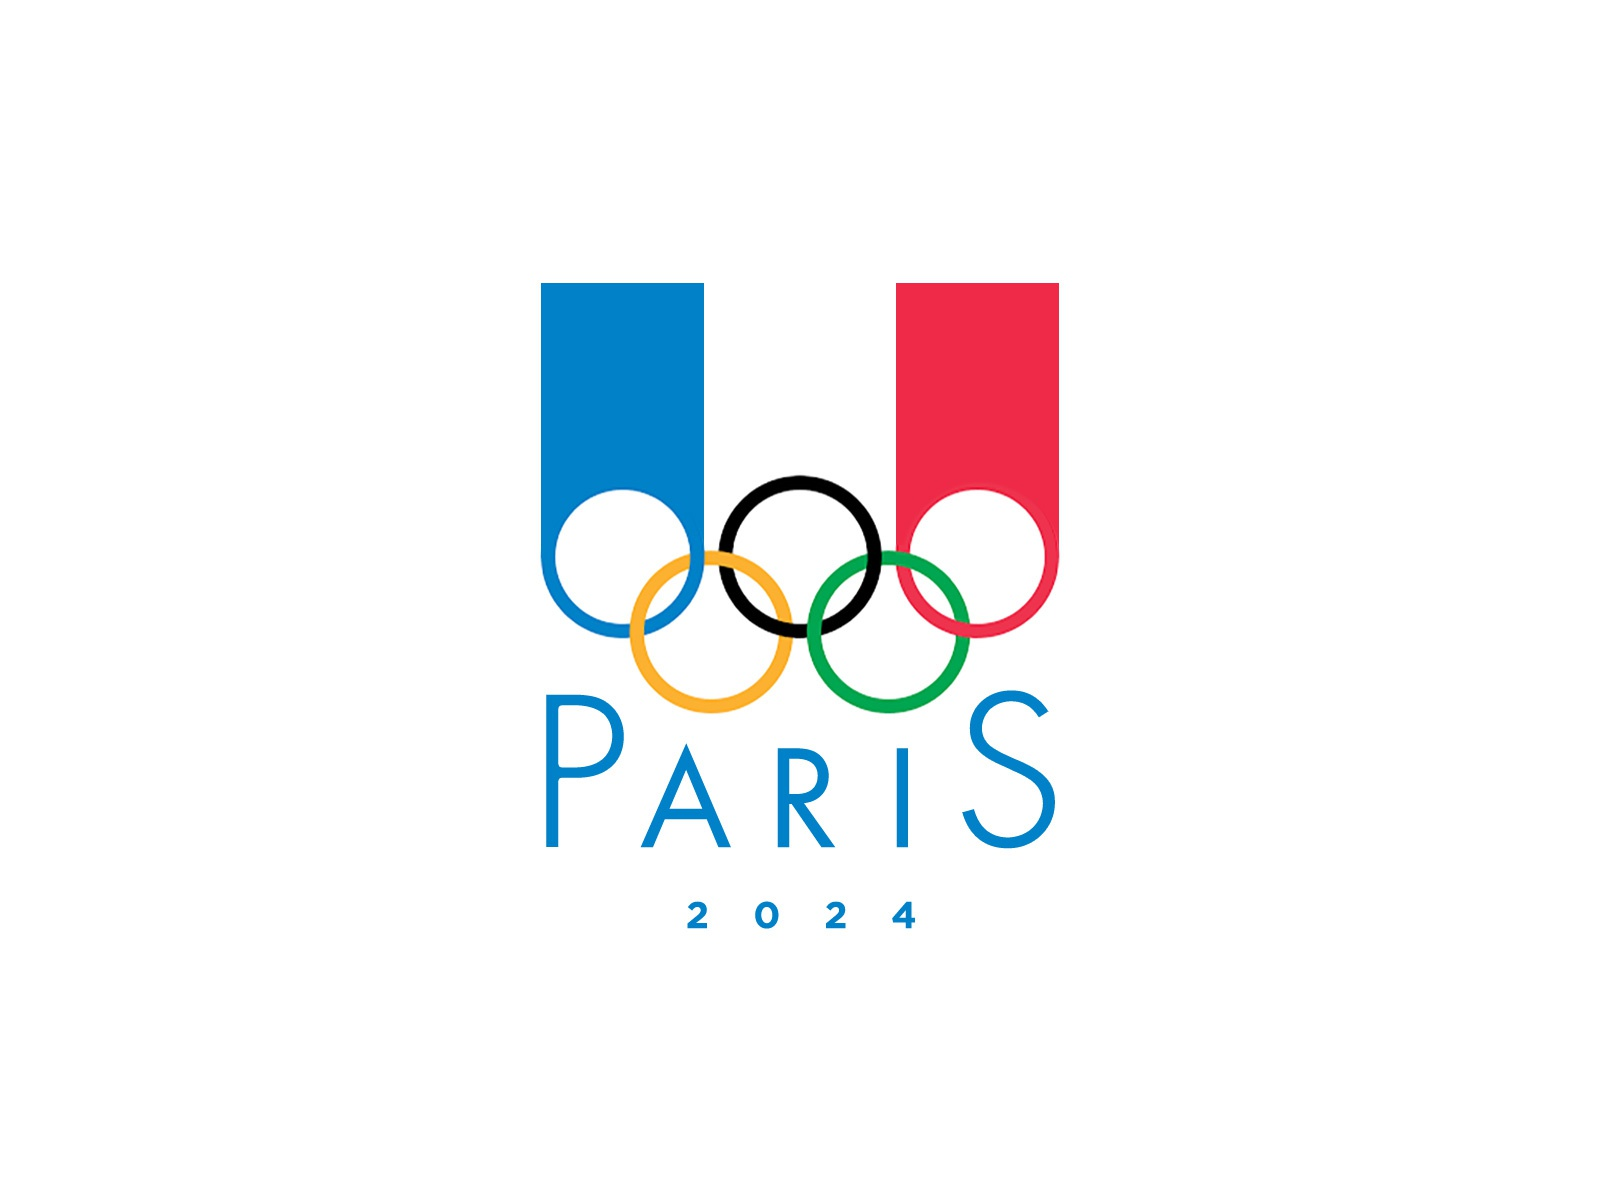 Paris 20 Olympic Logo CONCEPT by Jorel Dray on Dribbble